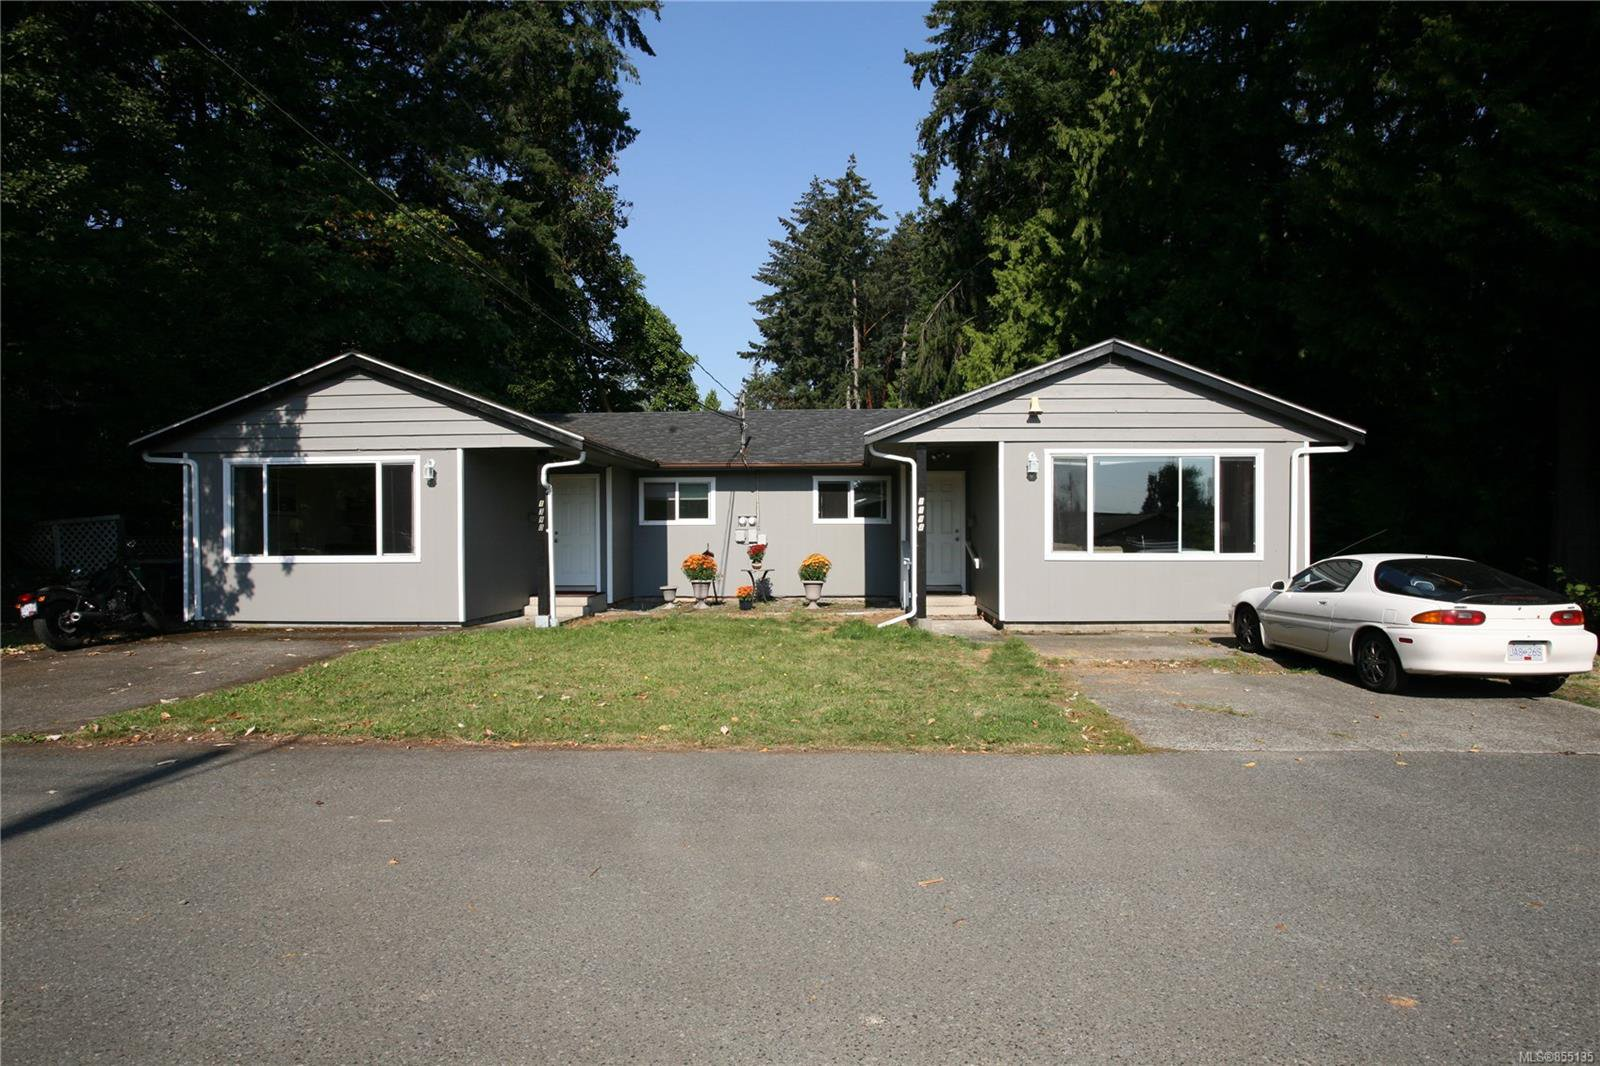 Main Photo: 1390 Boundary Cres in : Na Central Nanaimo Full Duplex for sale (Nanaimo)  : MLS®# 855135